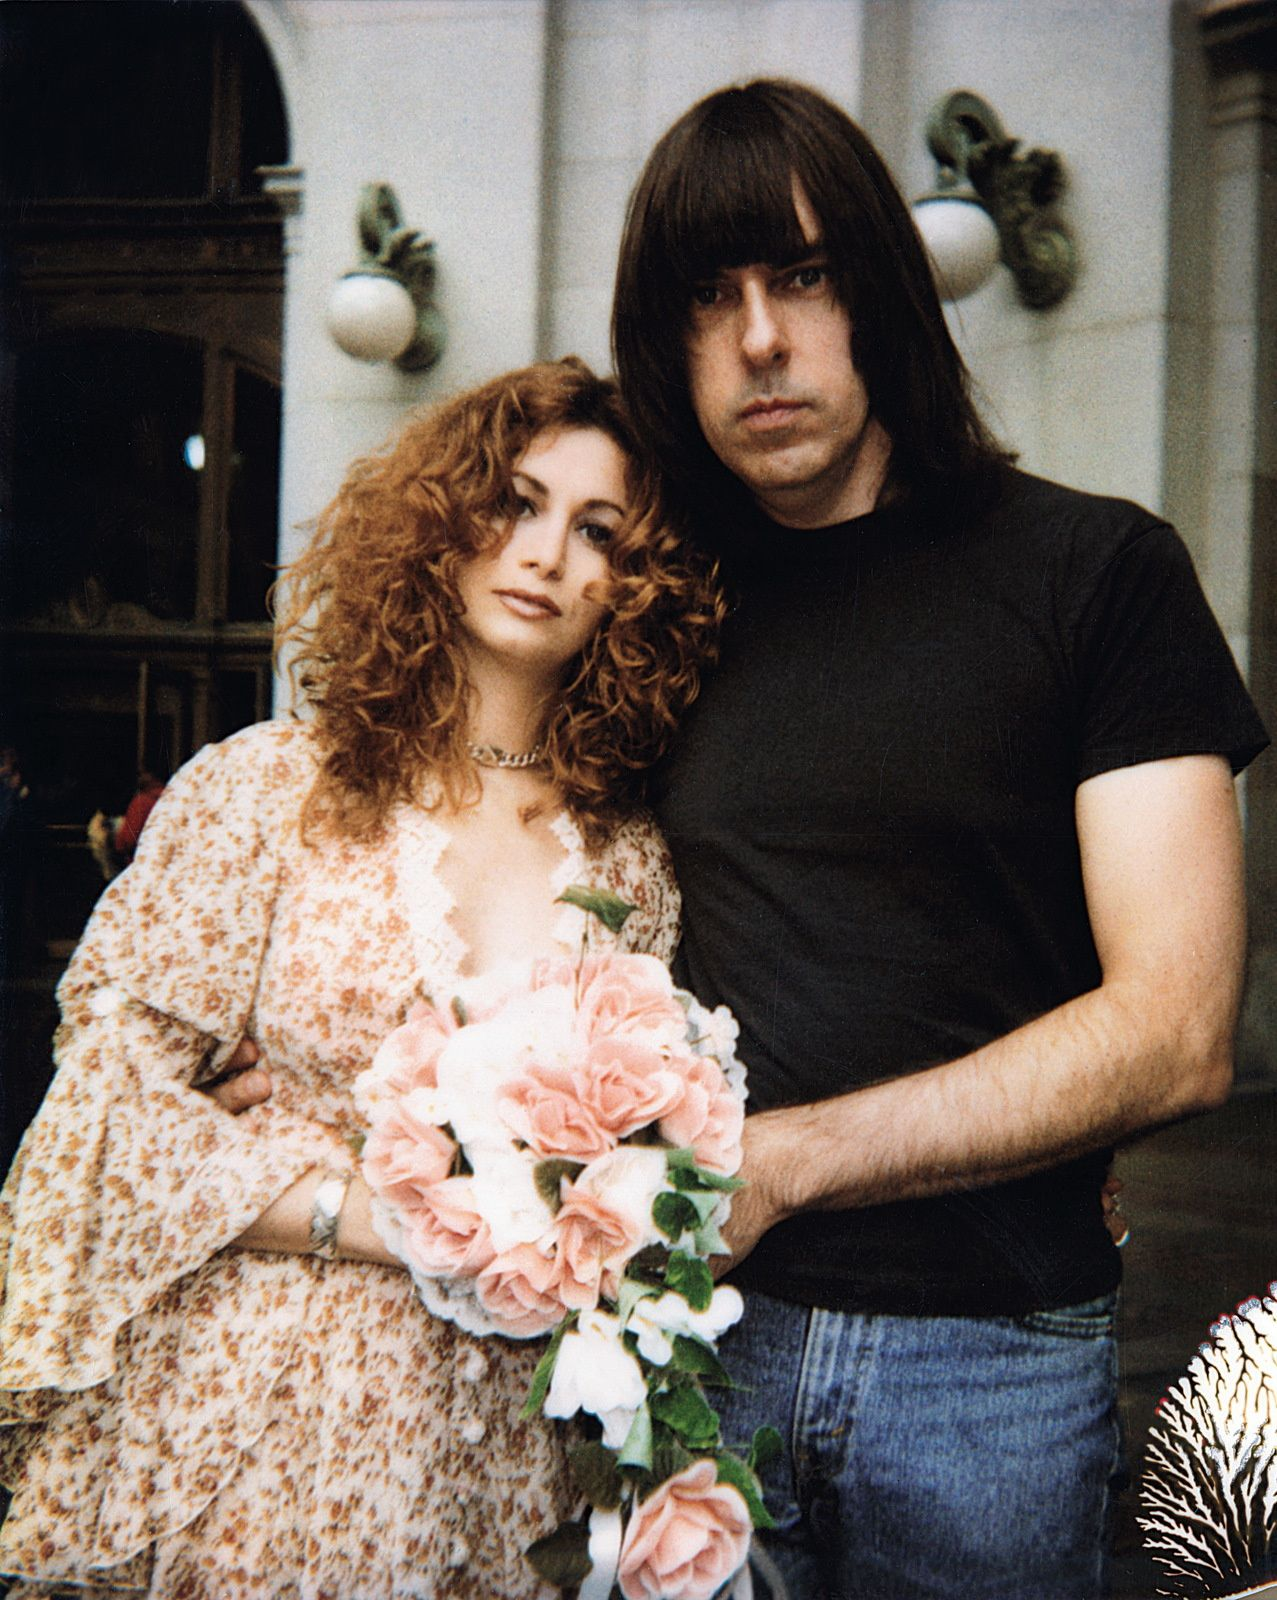 Johnny Ramone married his wife Linda in 1994